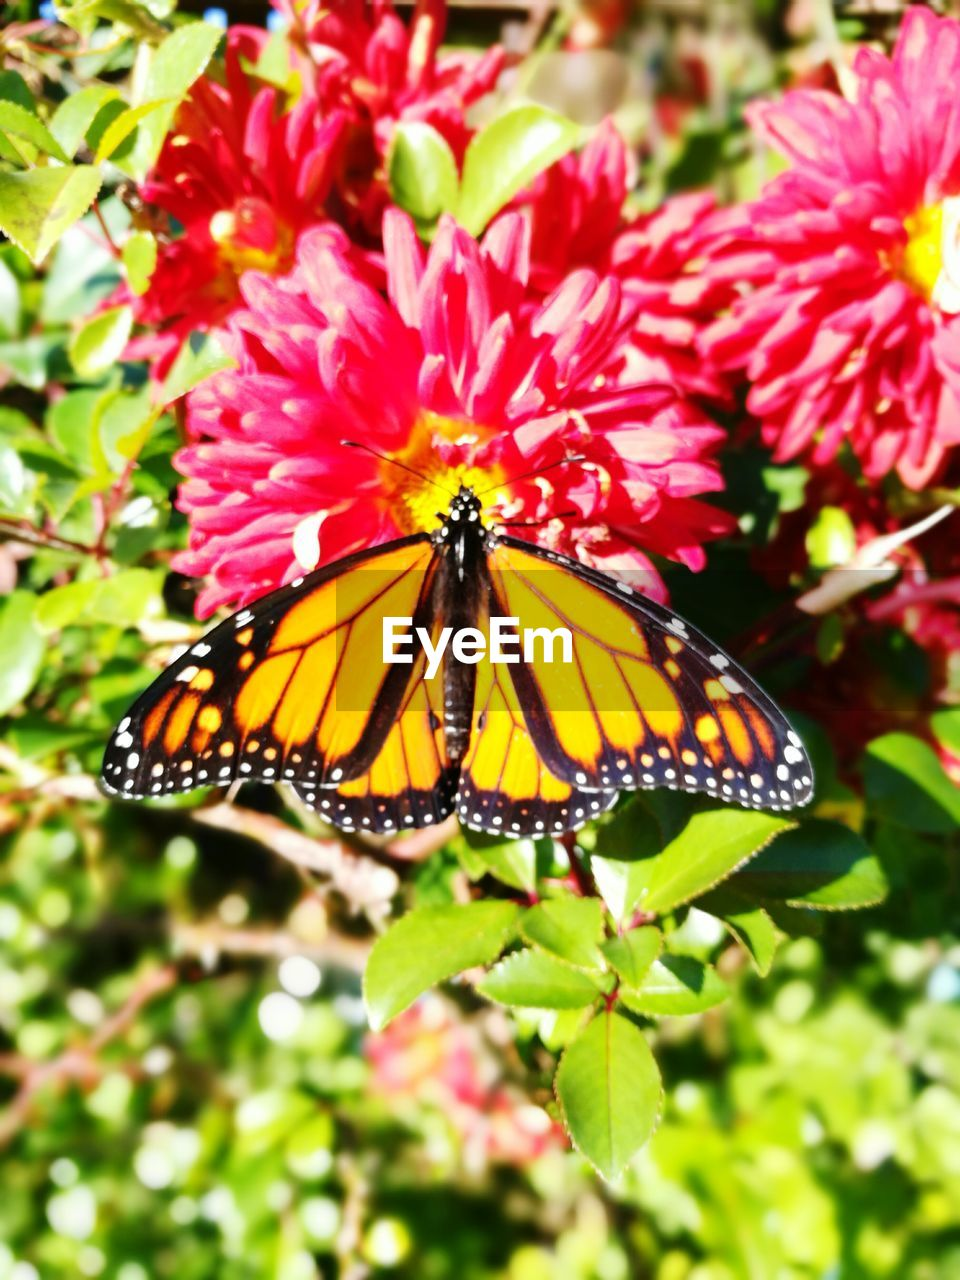 flower, animals in the wild, nature, insect, growth, animal themes, freshness, beauty in nature, butterfly - insect, fragility, one animal, no people, petal, plant, day, flower head, outdoors, close-up, pollination